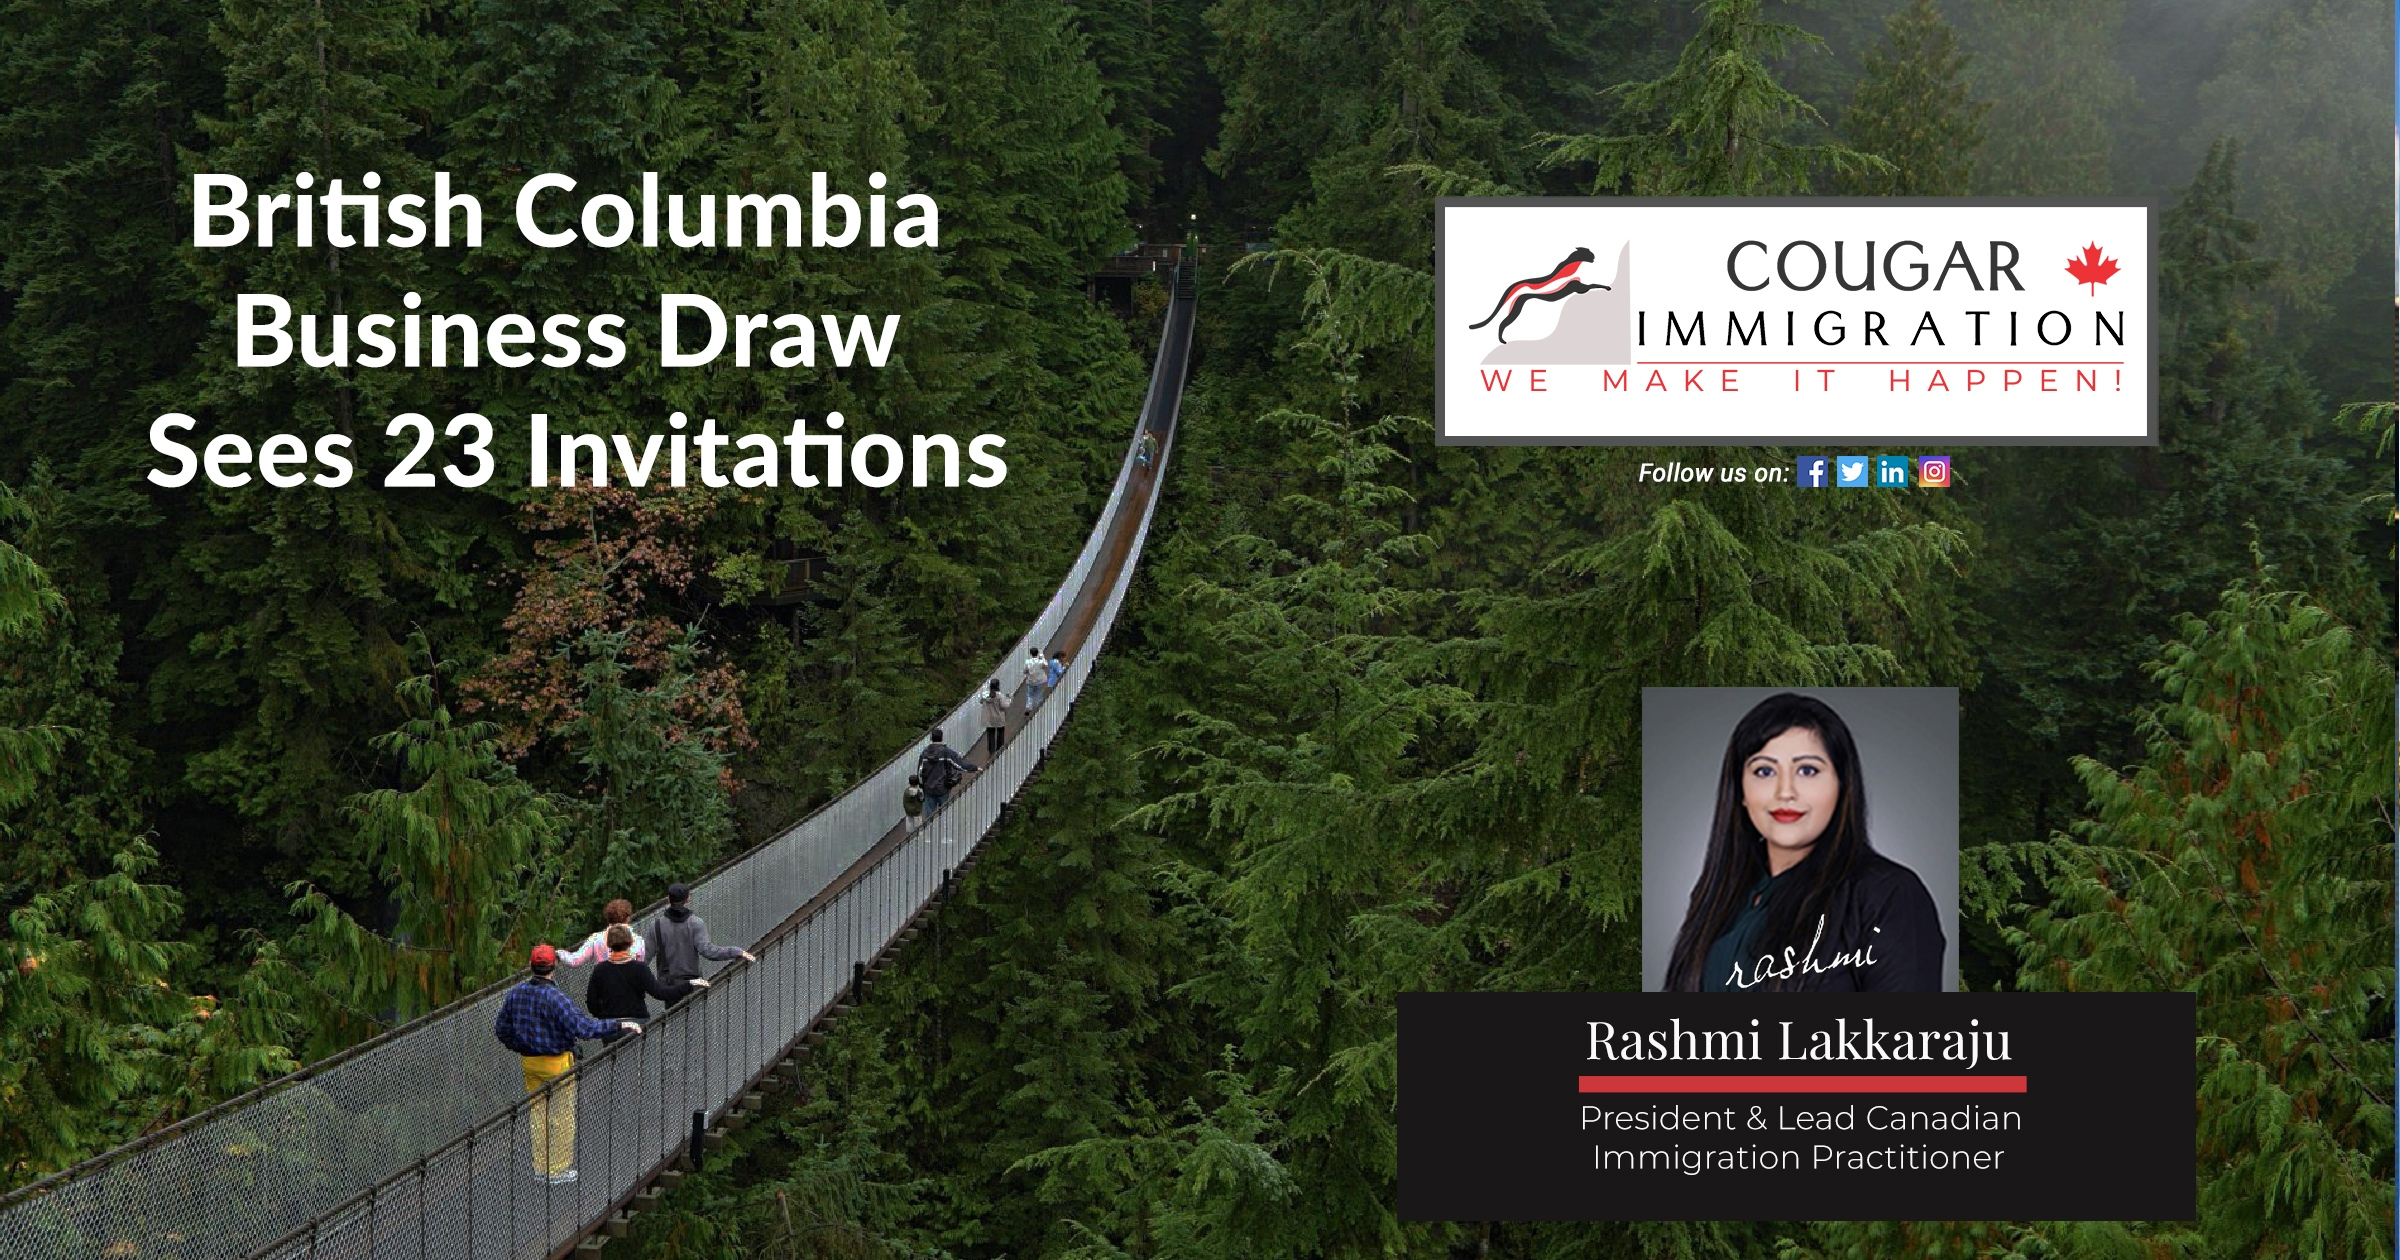 Most modern British Columbia Industry Draw Sees 23 Invitations Issued thumbnail